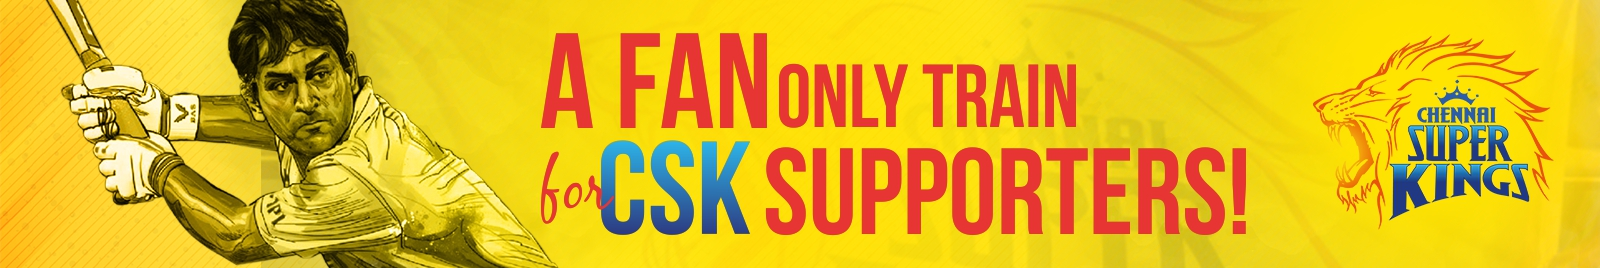 A FAN ONLY TRAIN ONLY FOR CSK SUPPORTERS!